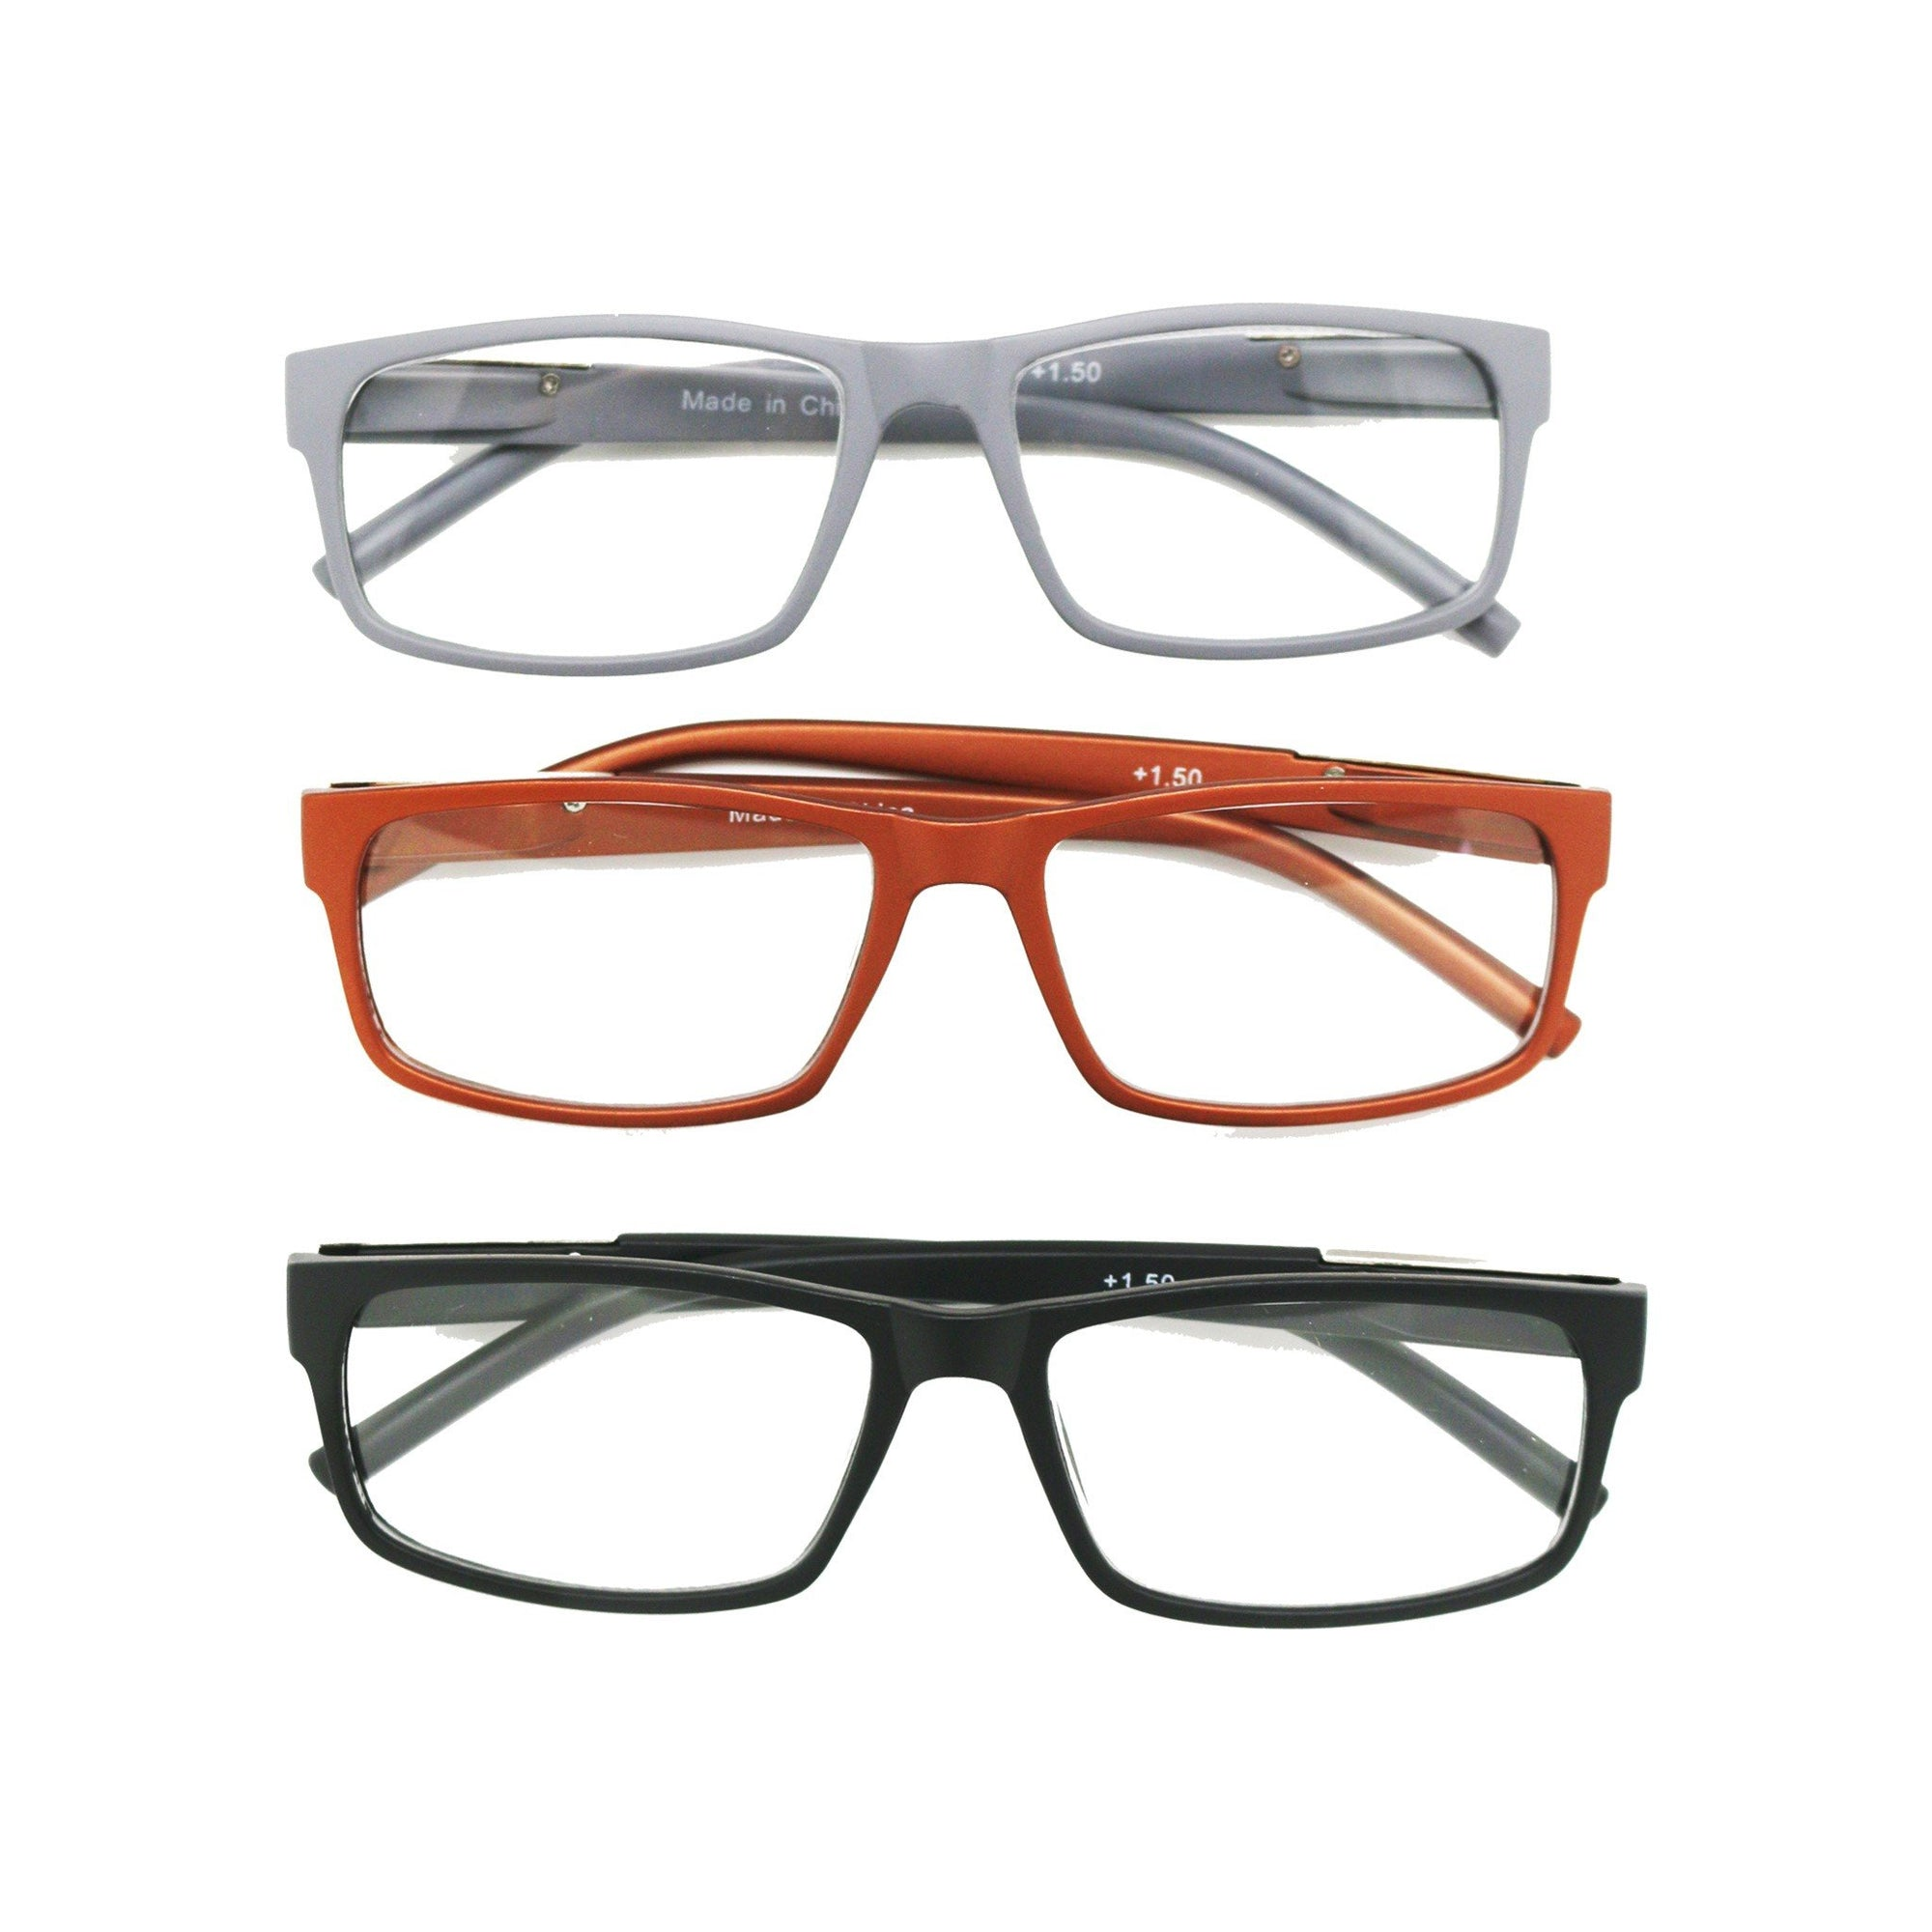 Casa Mens Reading Glasses +1.0 Magnification 3pk